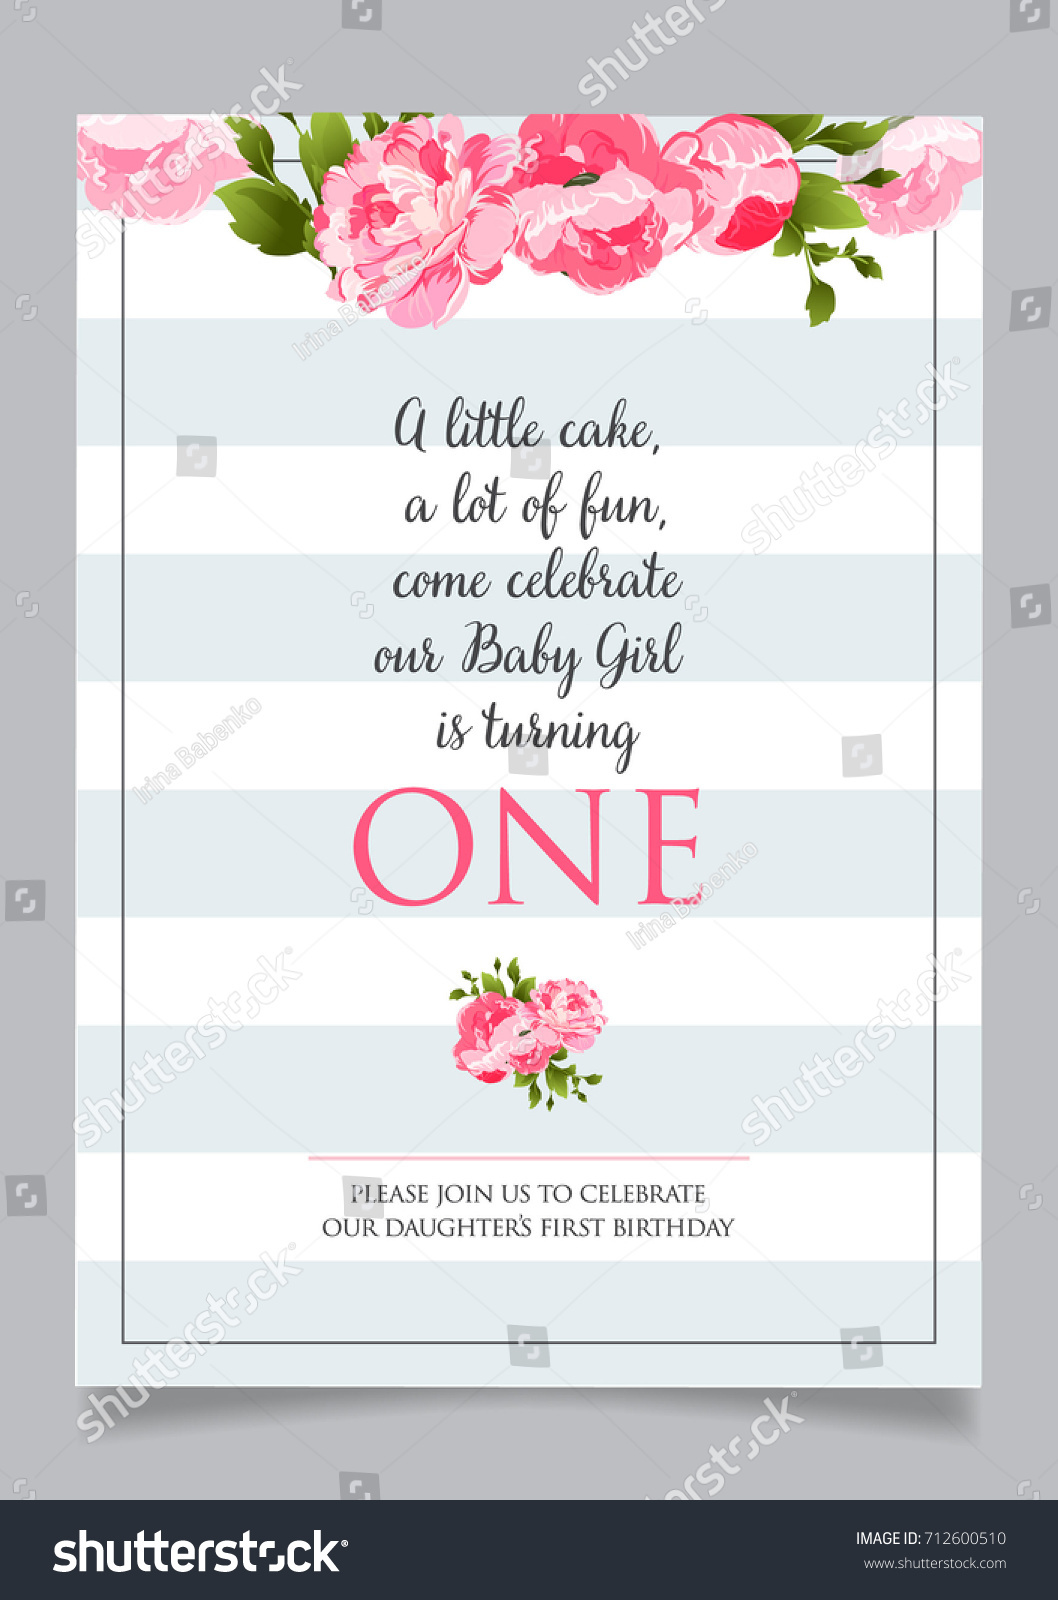 First Birthday Invitation Girl One Year Stock Vector 712600510 ...